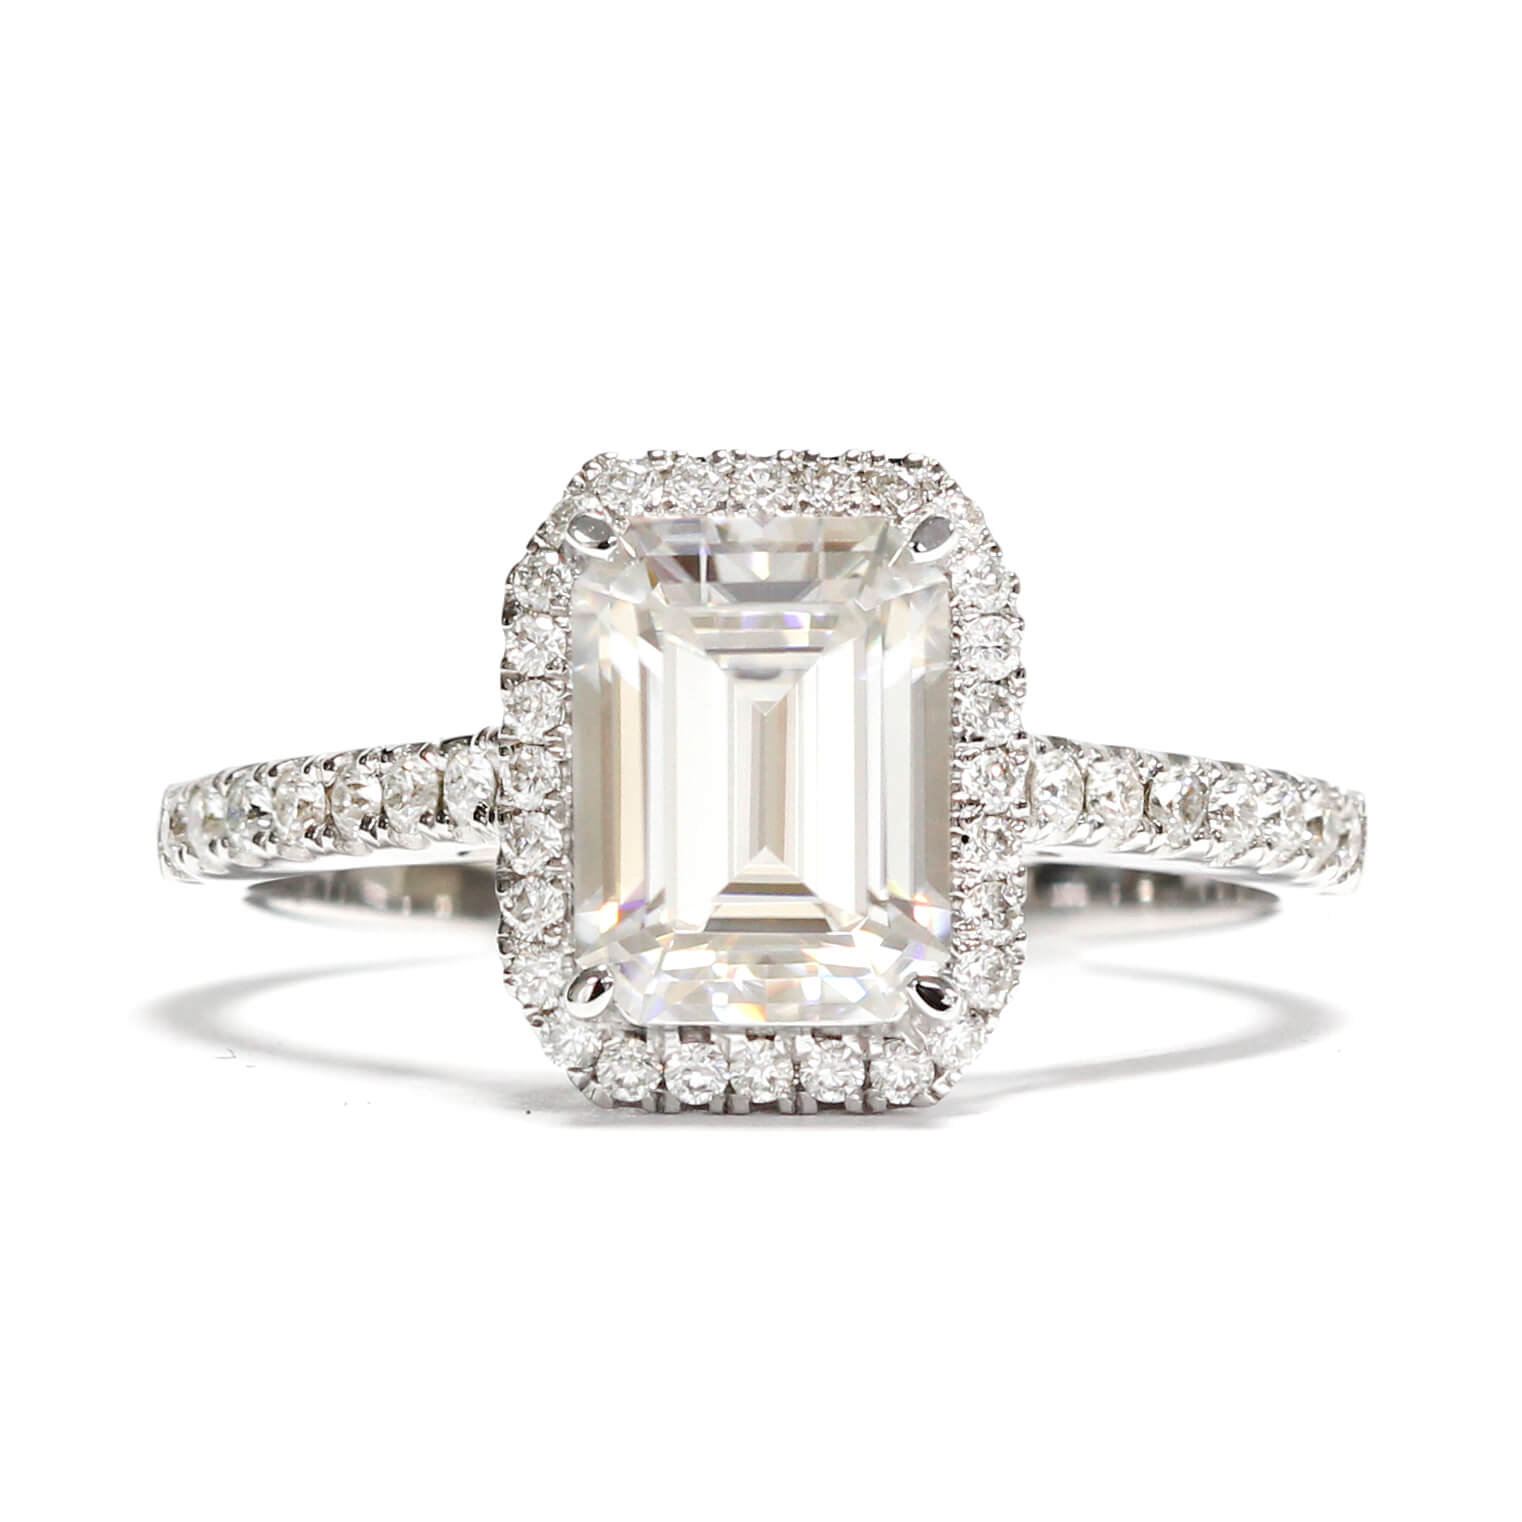 Ready-Made | Ella 2 Carat Emerald Cut Moissanite with Halo in 18K White Gold | Sizes HK 12-16 - LeCaine Gems